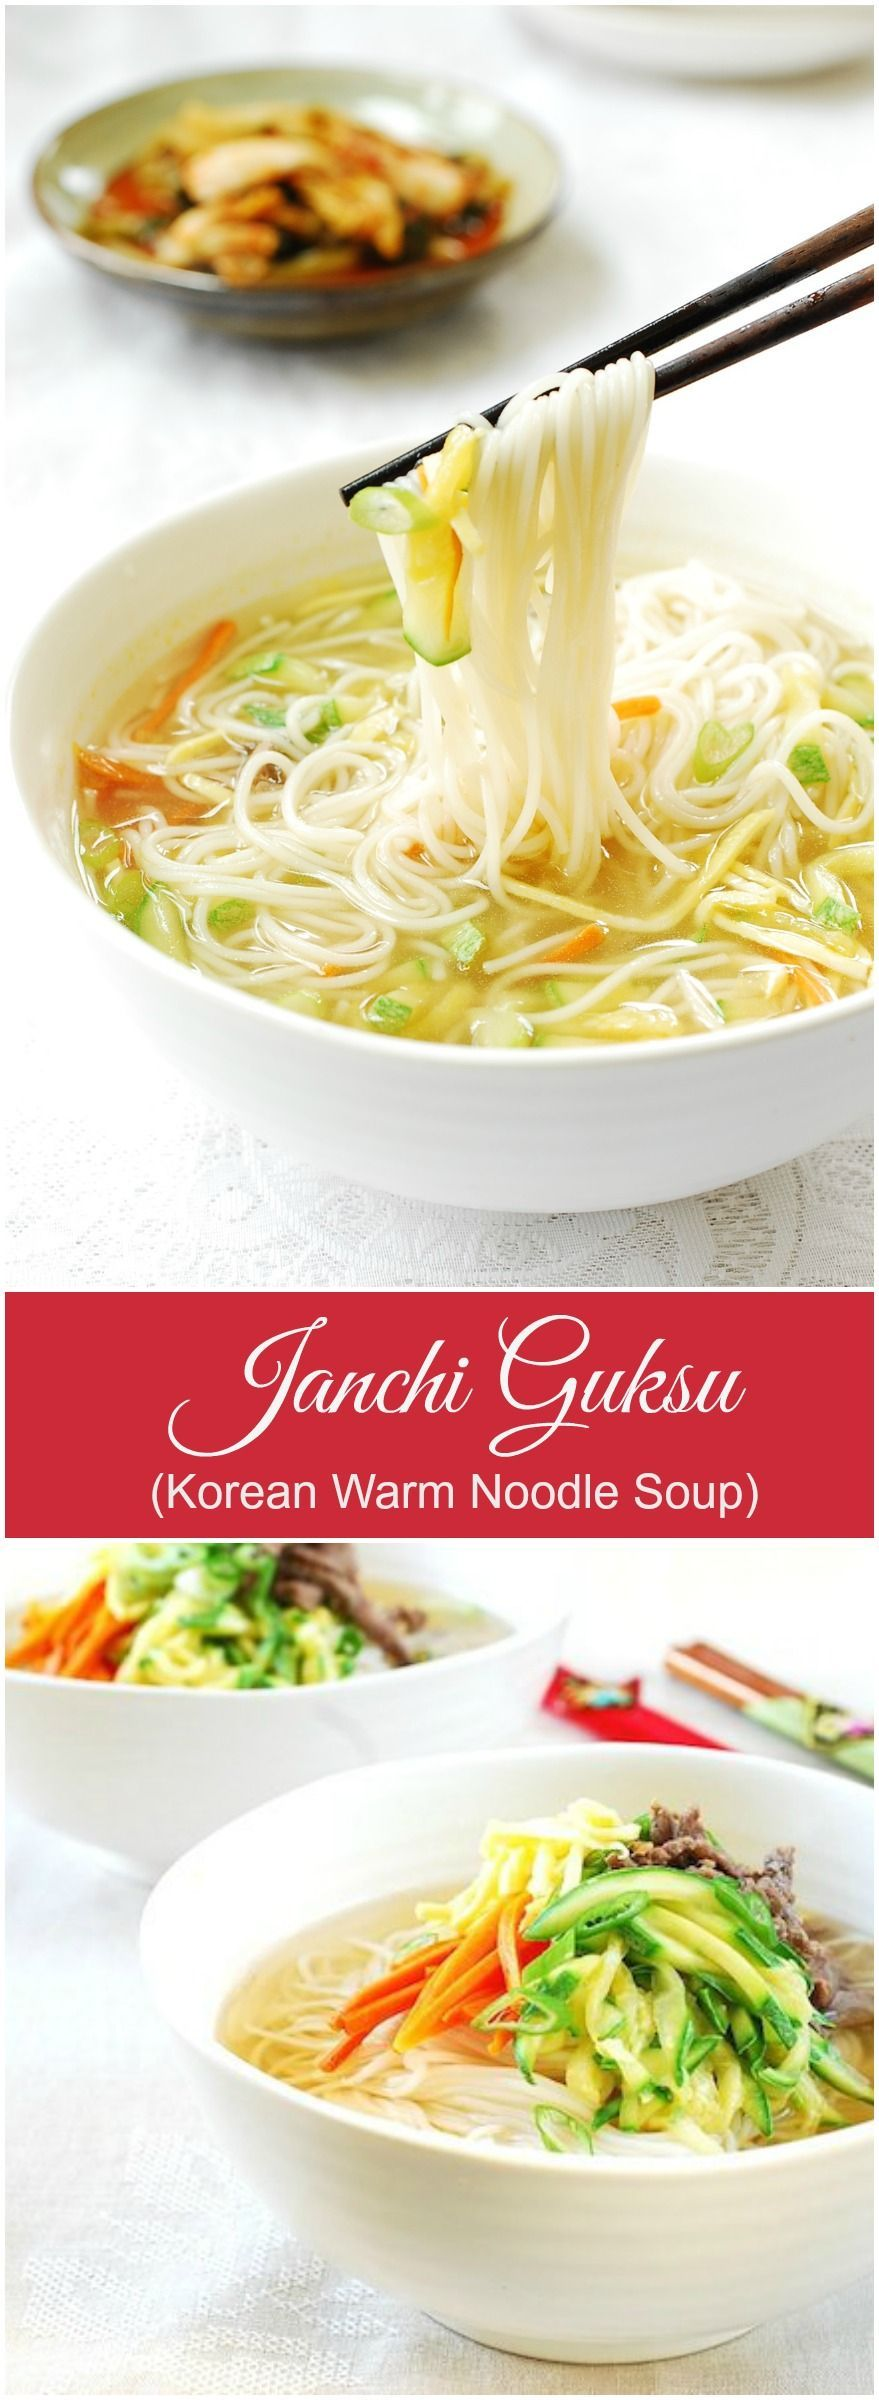 "Guksu (Korean Warm Noodle Soup) Janchi guksu, translated into ""banquet/feast noodles,"" is a simple warm noodle dish that is made with a clear anchovy or beef broth.Janchi guksu, translated into ""banquet/feast noodles,"" is a simple warm noodle dish that is made with a clear anchovy or beef broth."